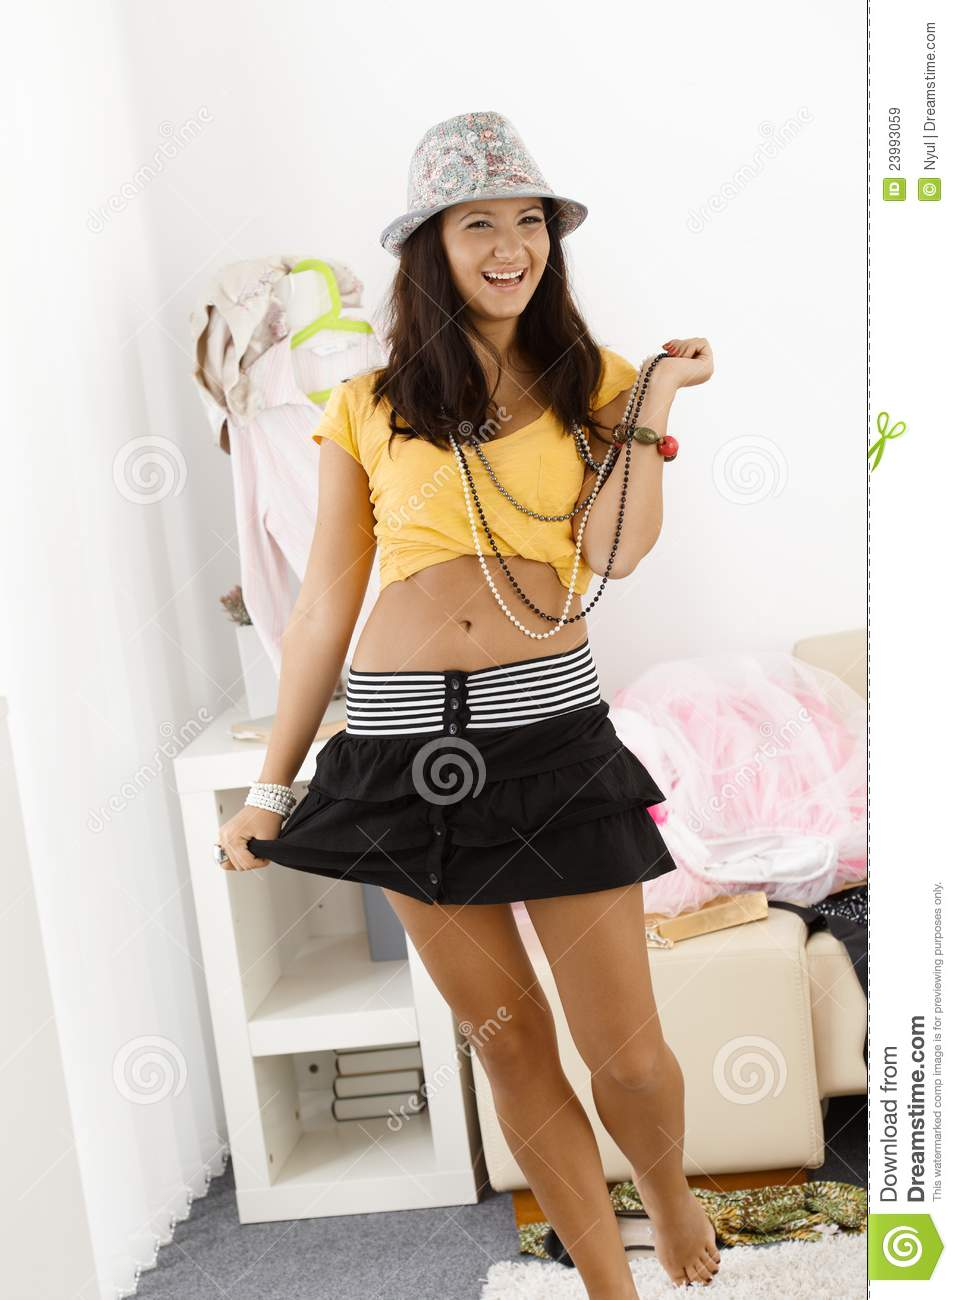 Teen girls in mini skirts